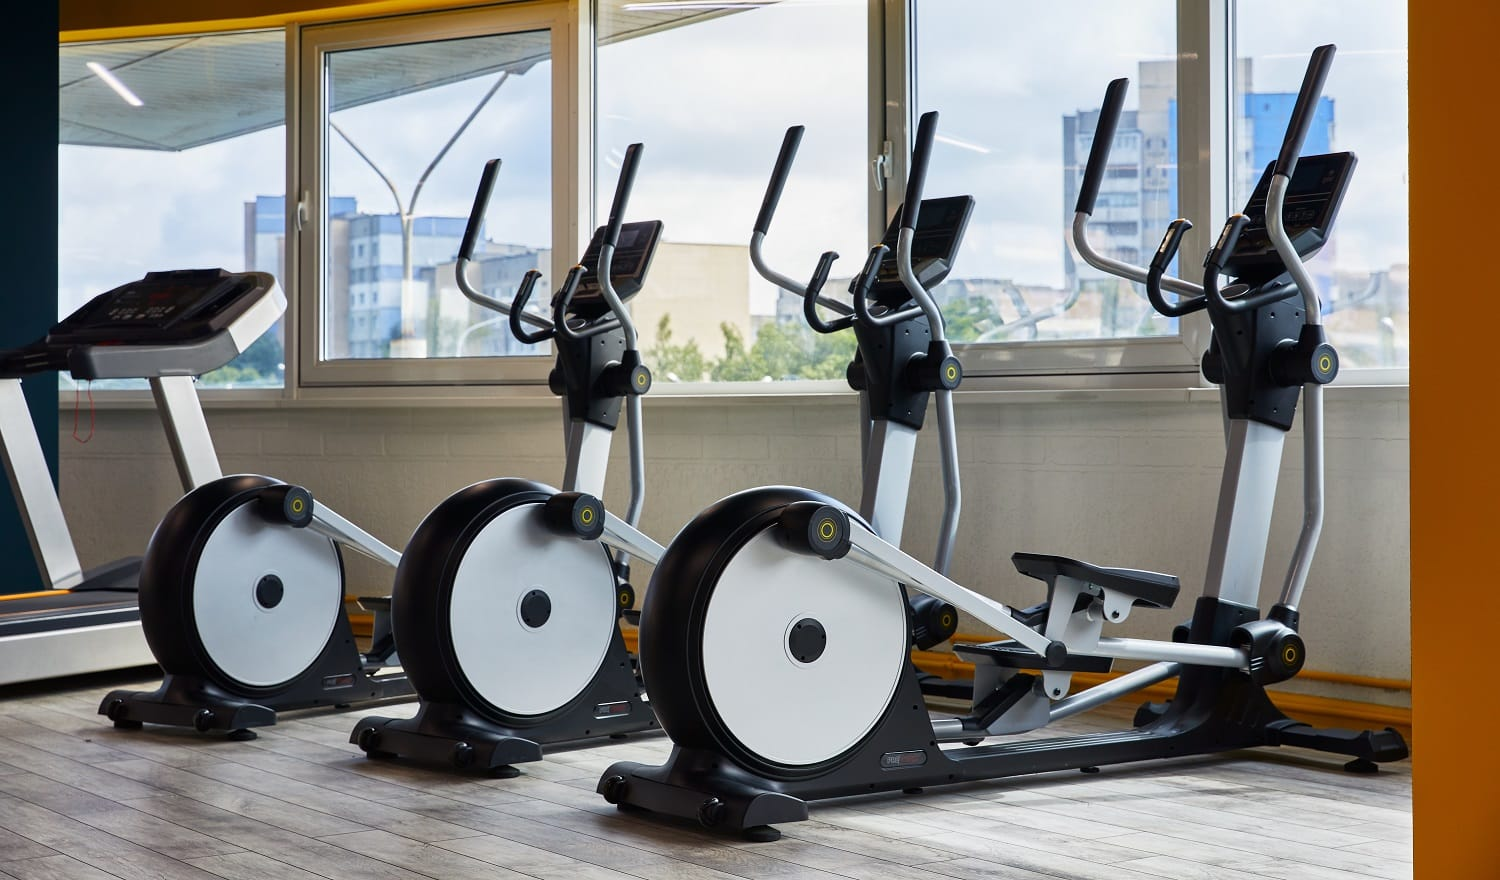 Elliptical trainers standing in a row, gym with large windows, view of the whole city